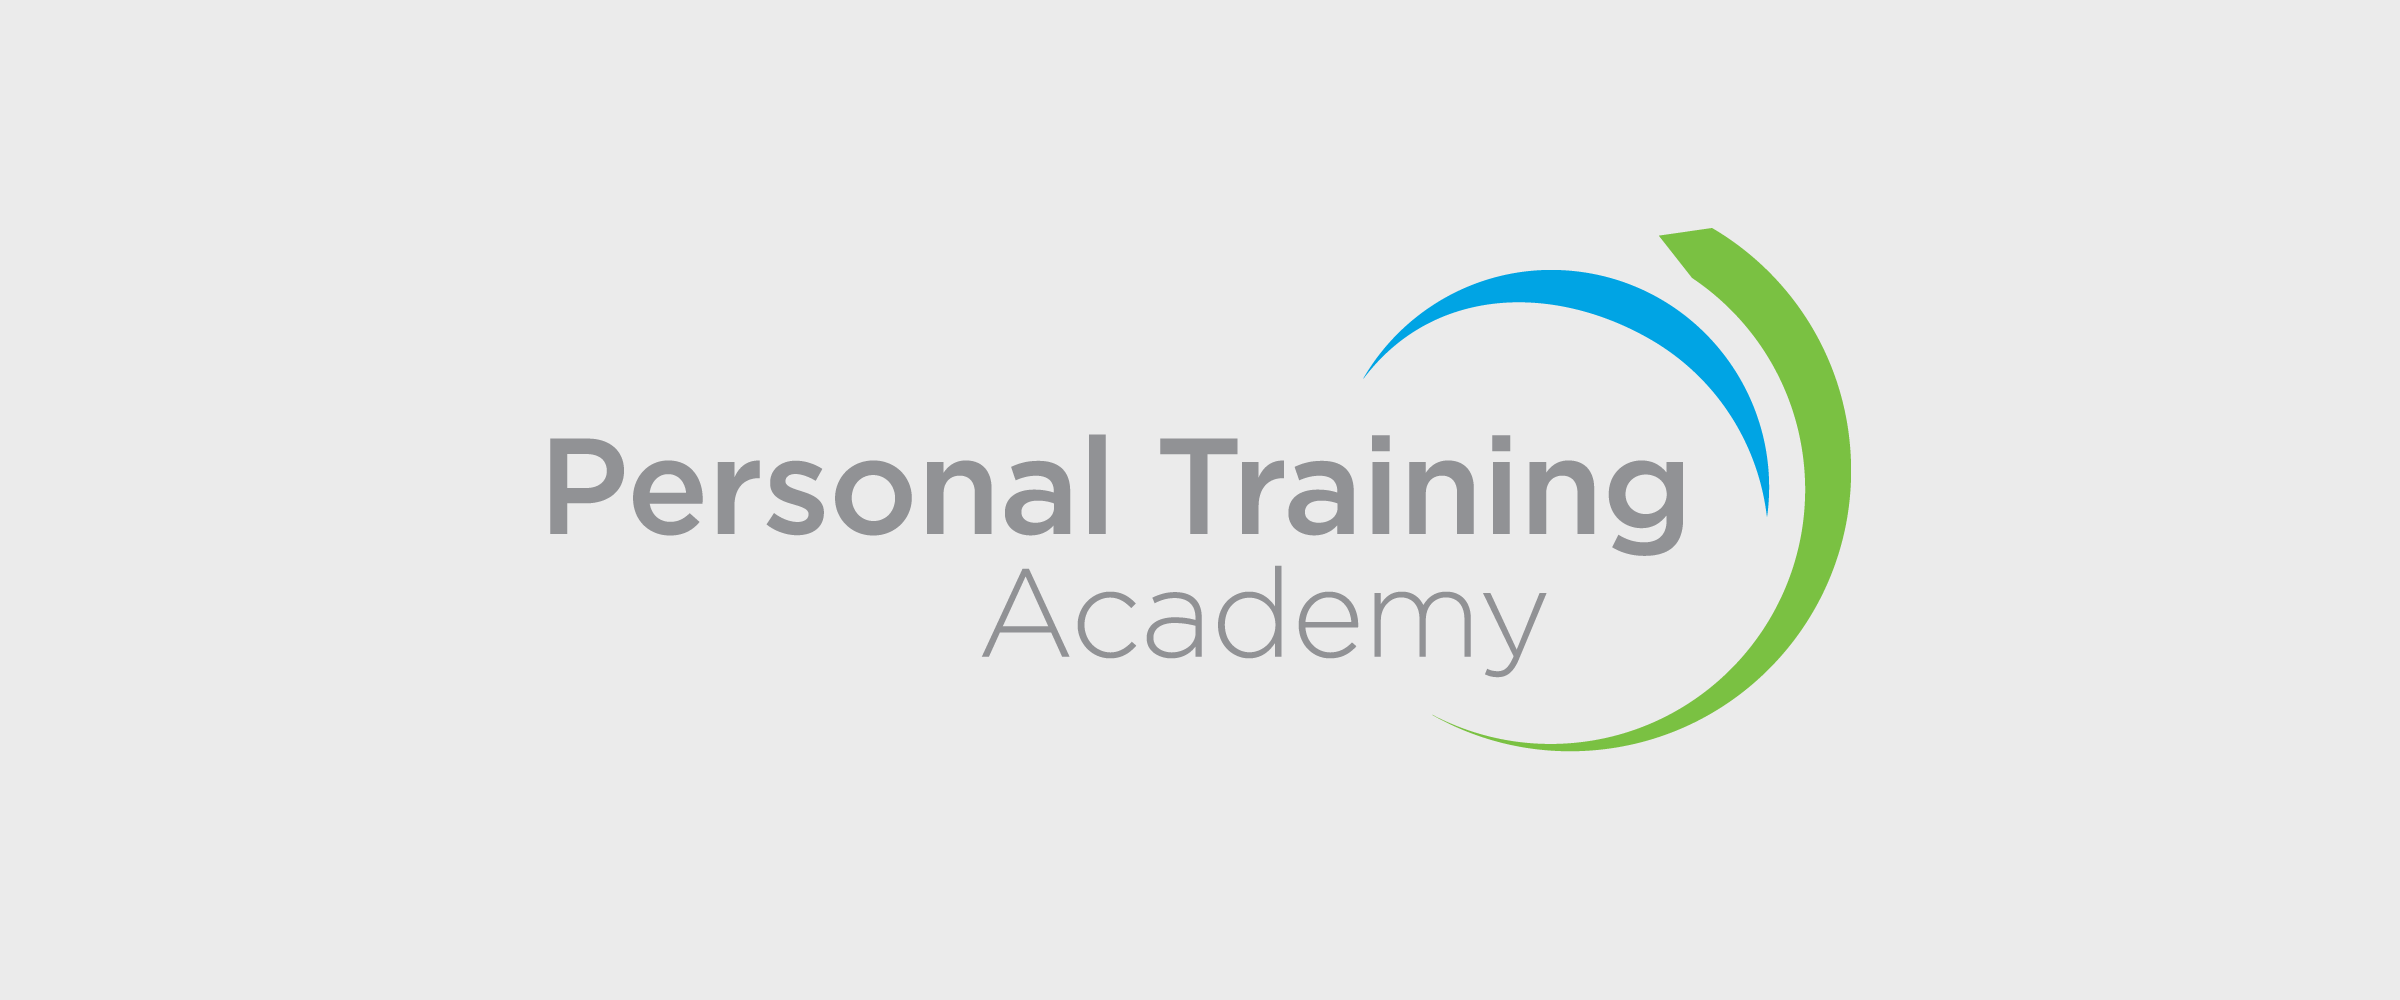 personal training qualifications personal training academy